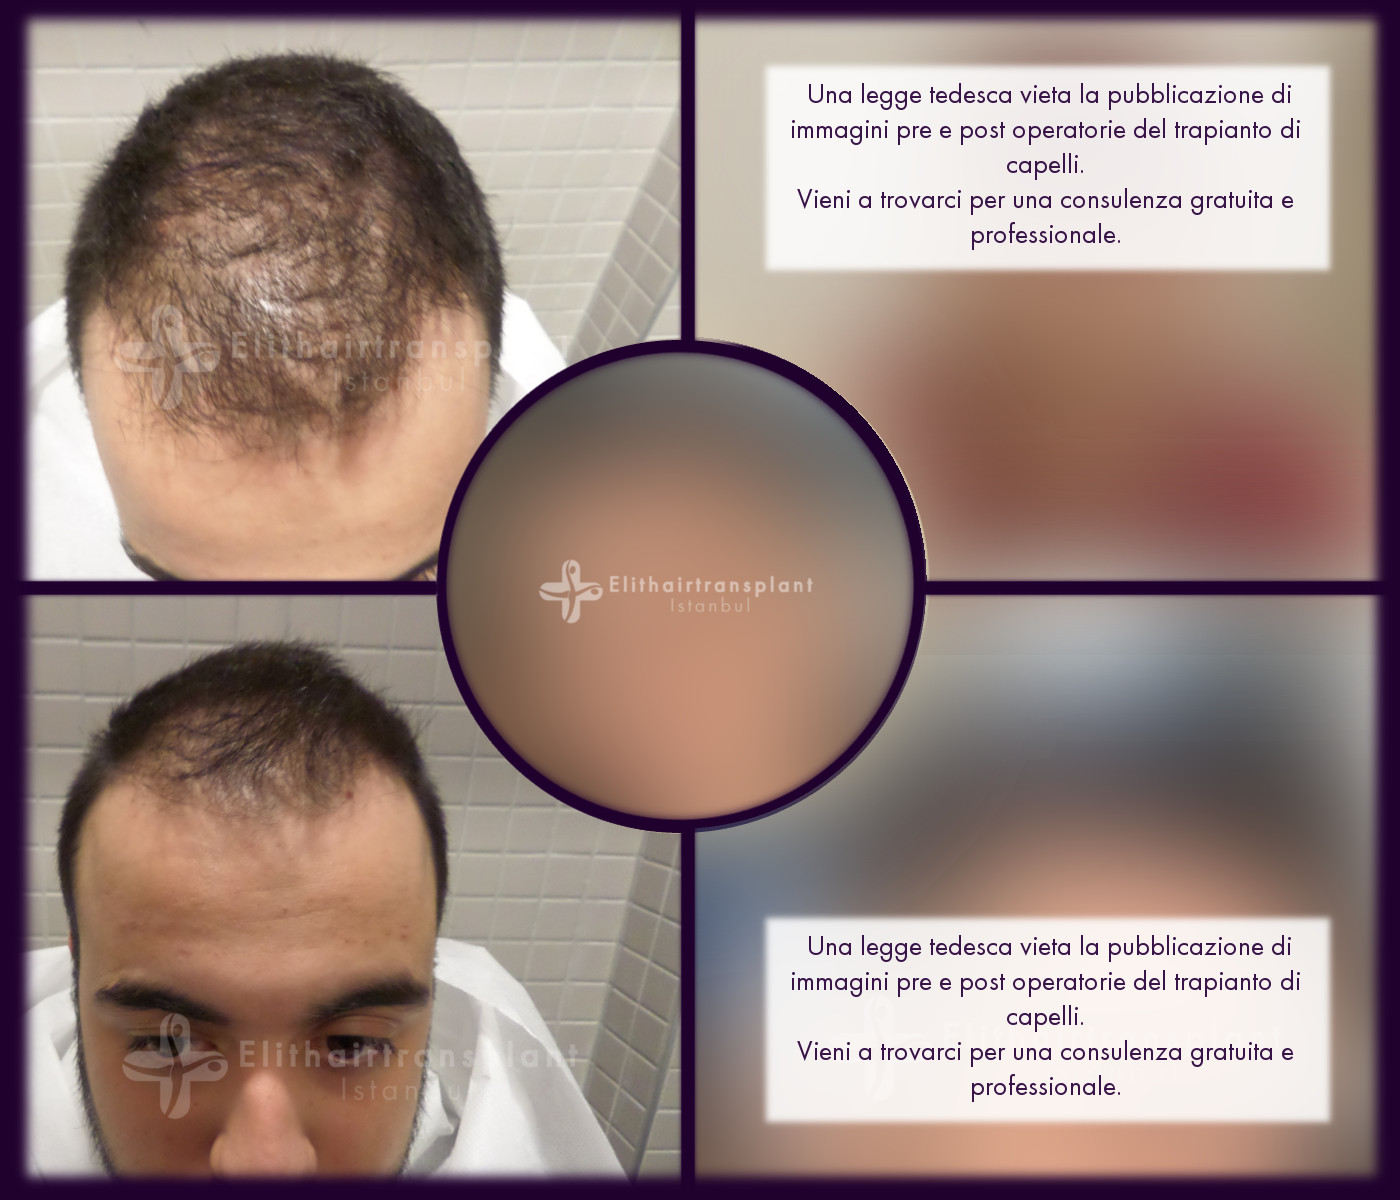 Trapianto capelli Turchia pre e post operatorio Elithairtransplant